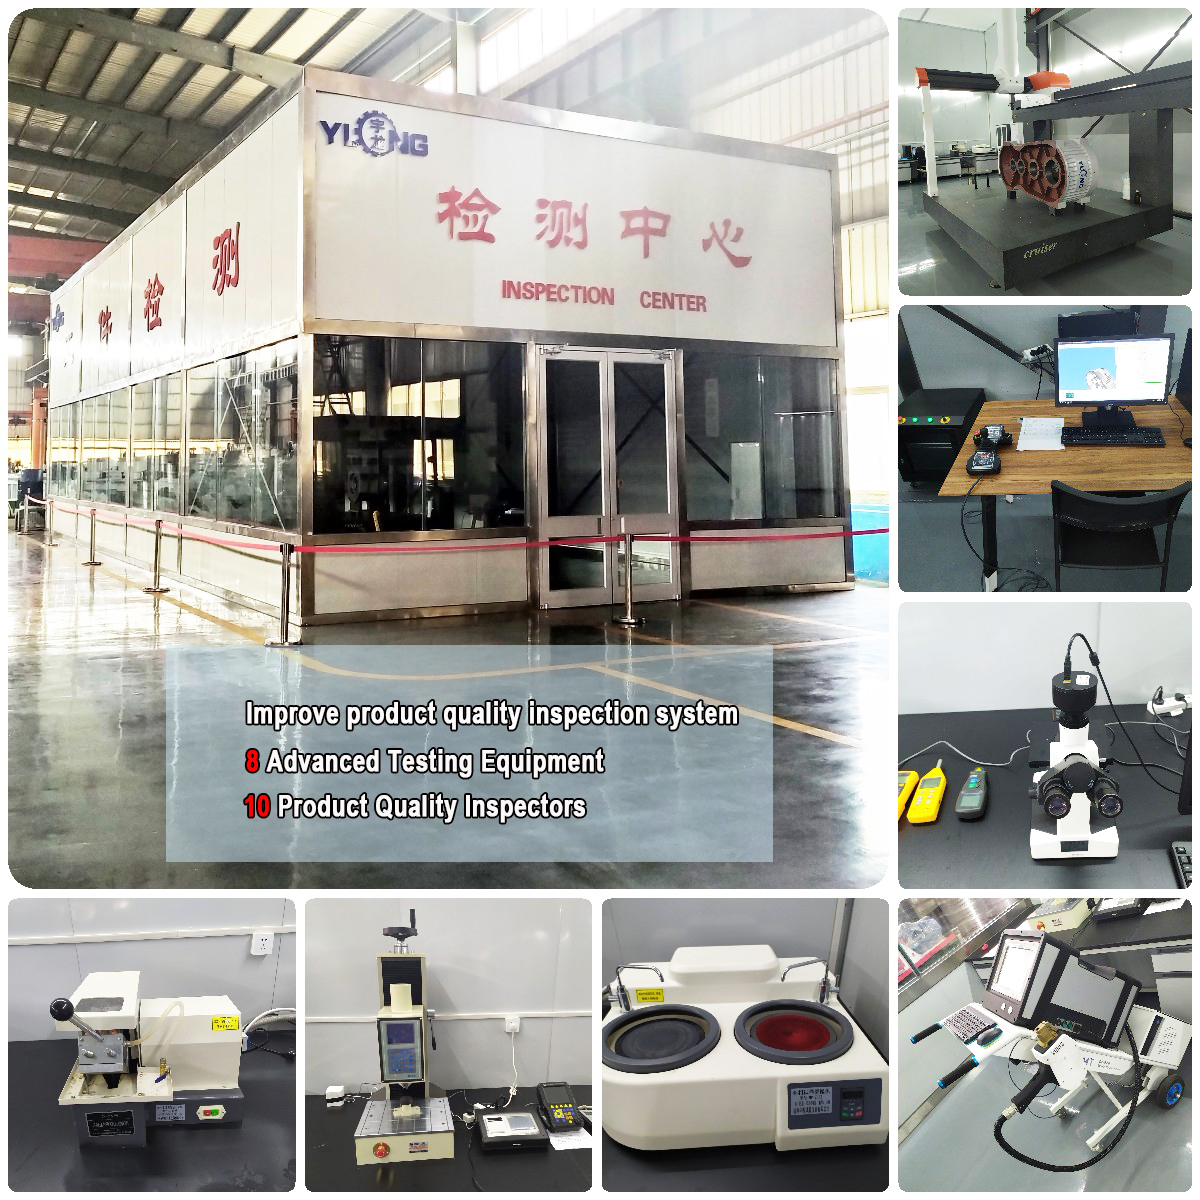 YULONG inspection center